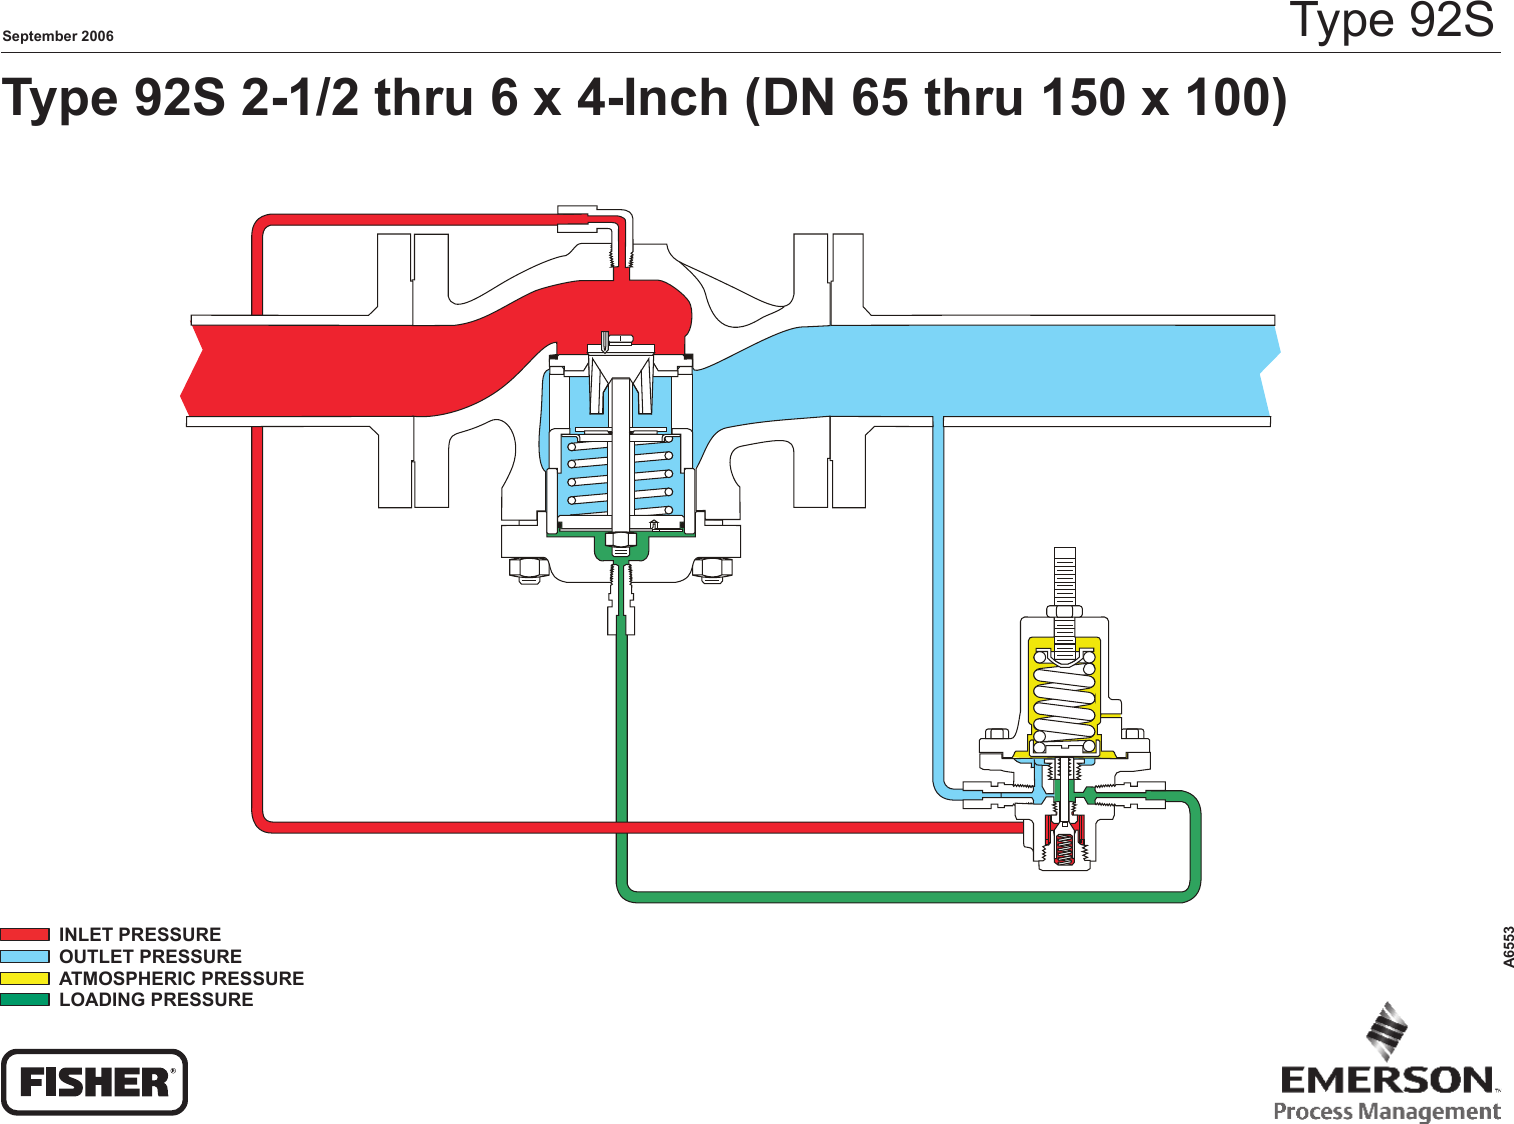 Emerson Type 92s Self Powered Control Valve Drawings And Schematics